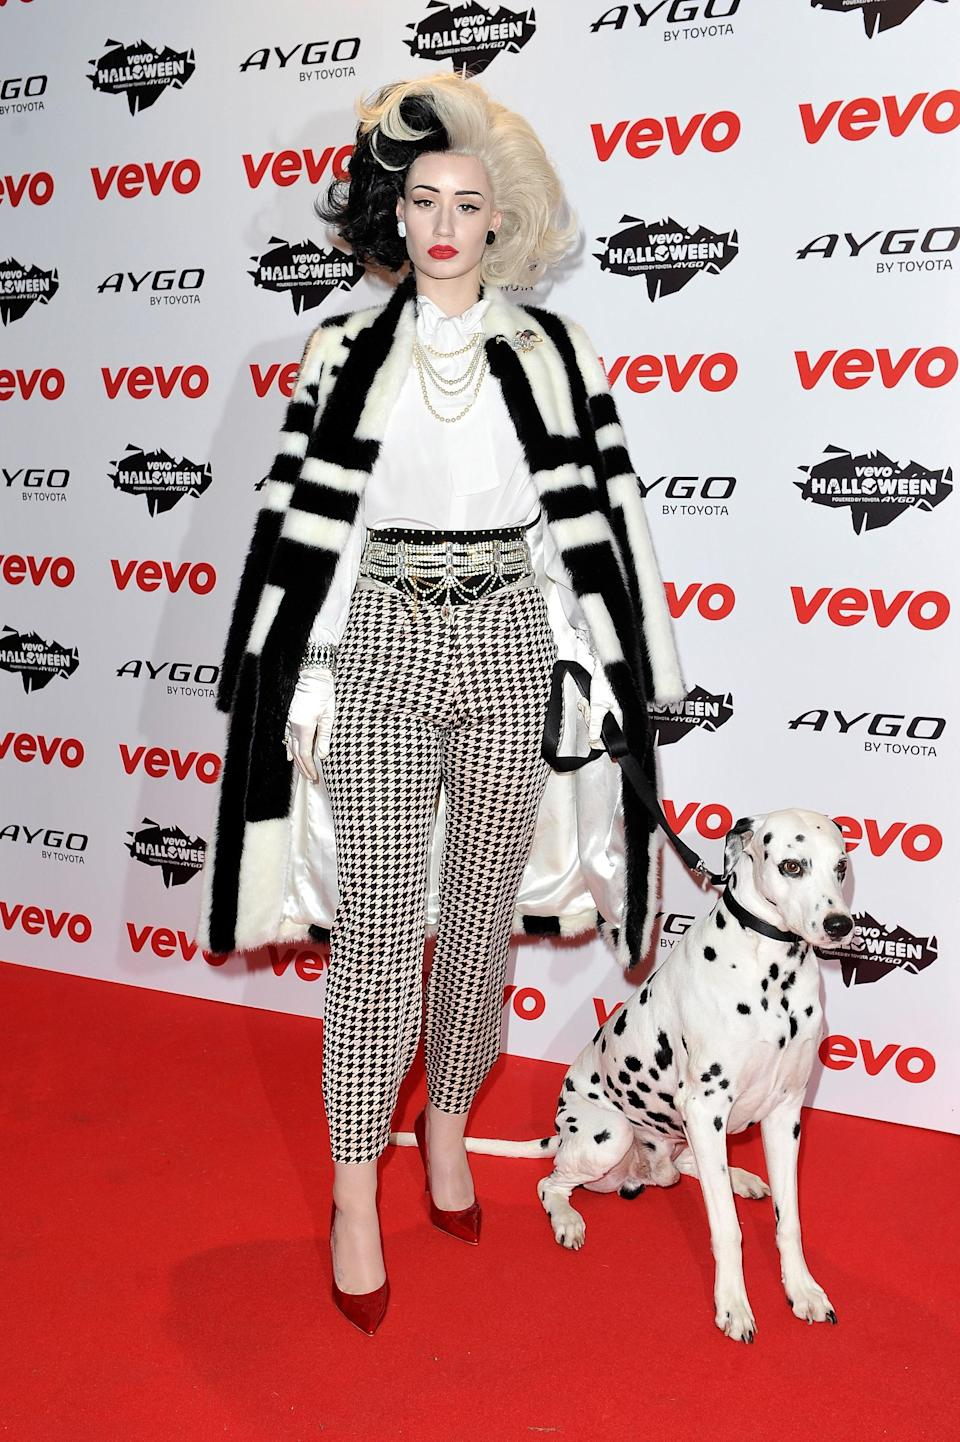 Iggy even brought along her own Dalmatian, which is awesome.